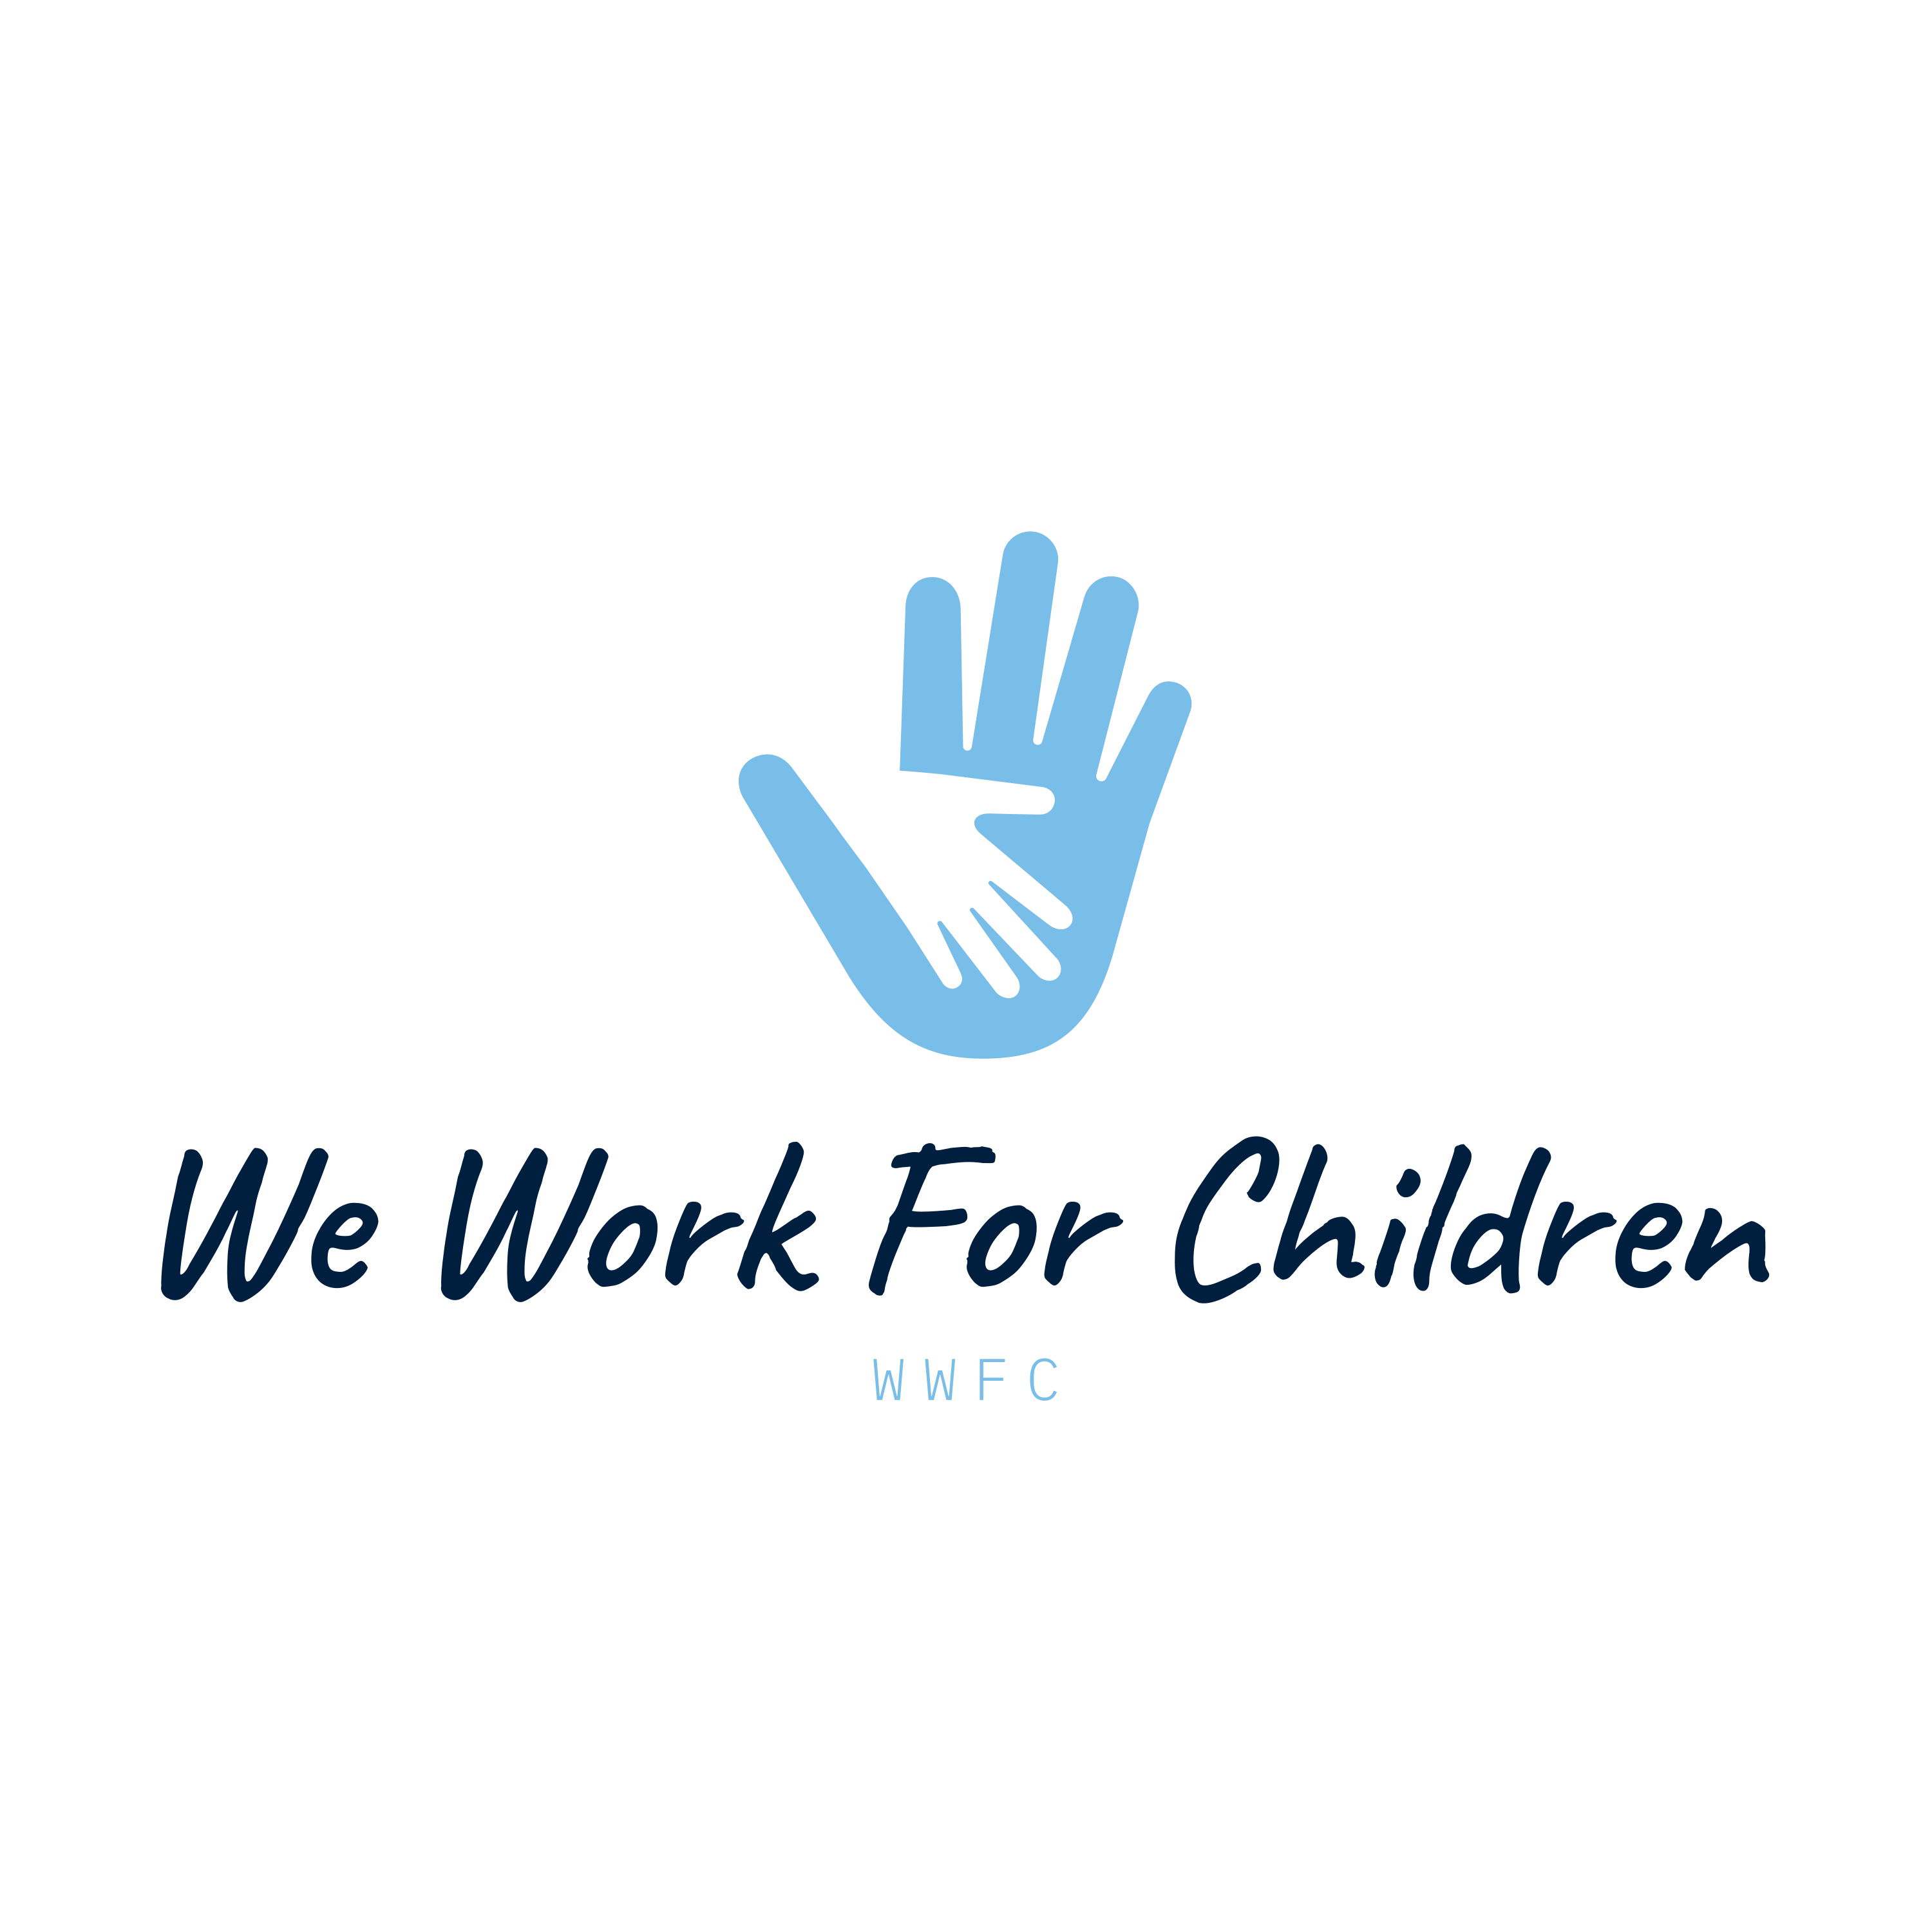 We Work For Children